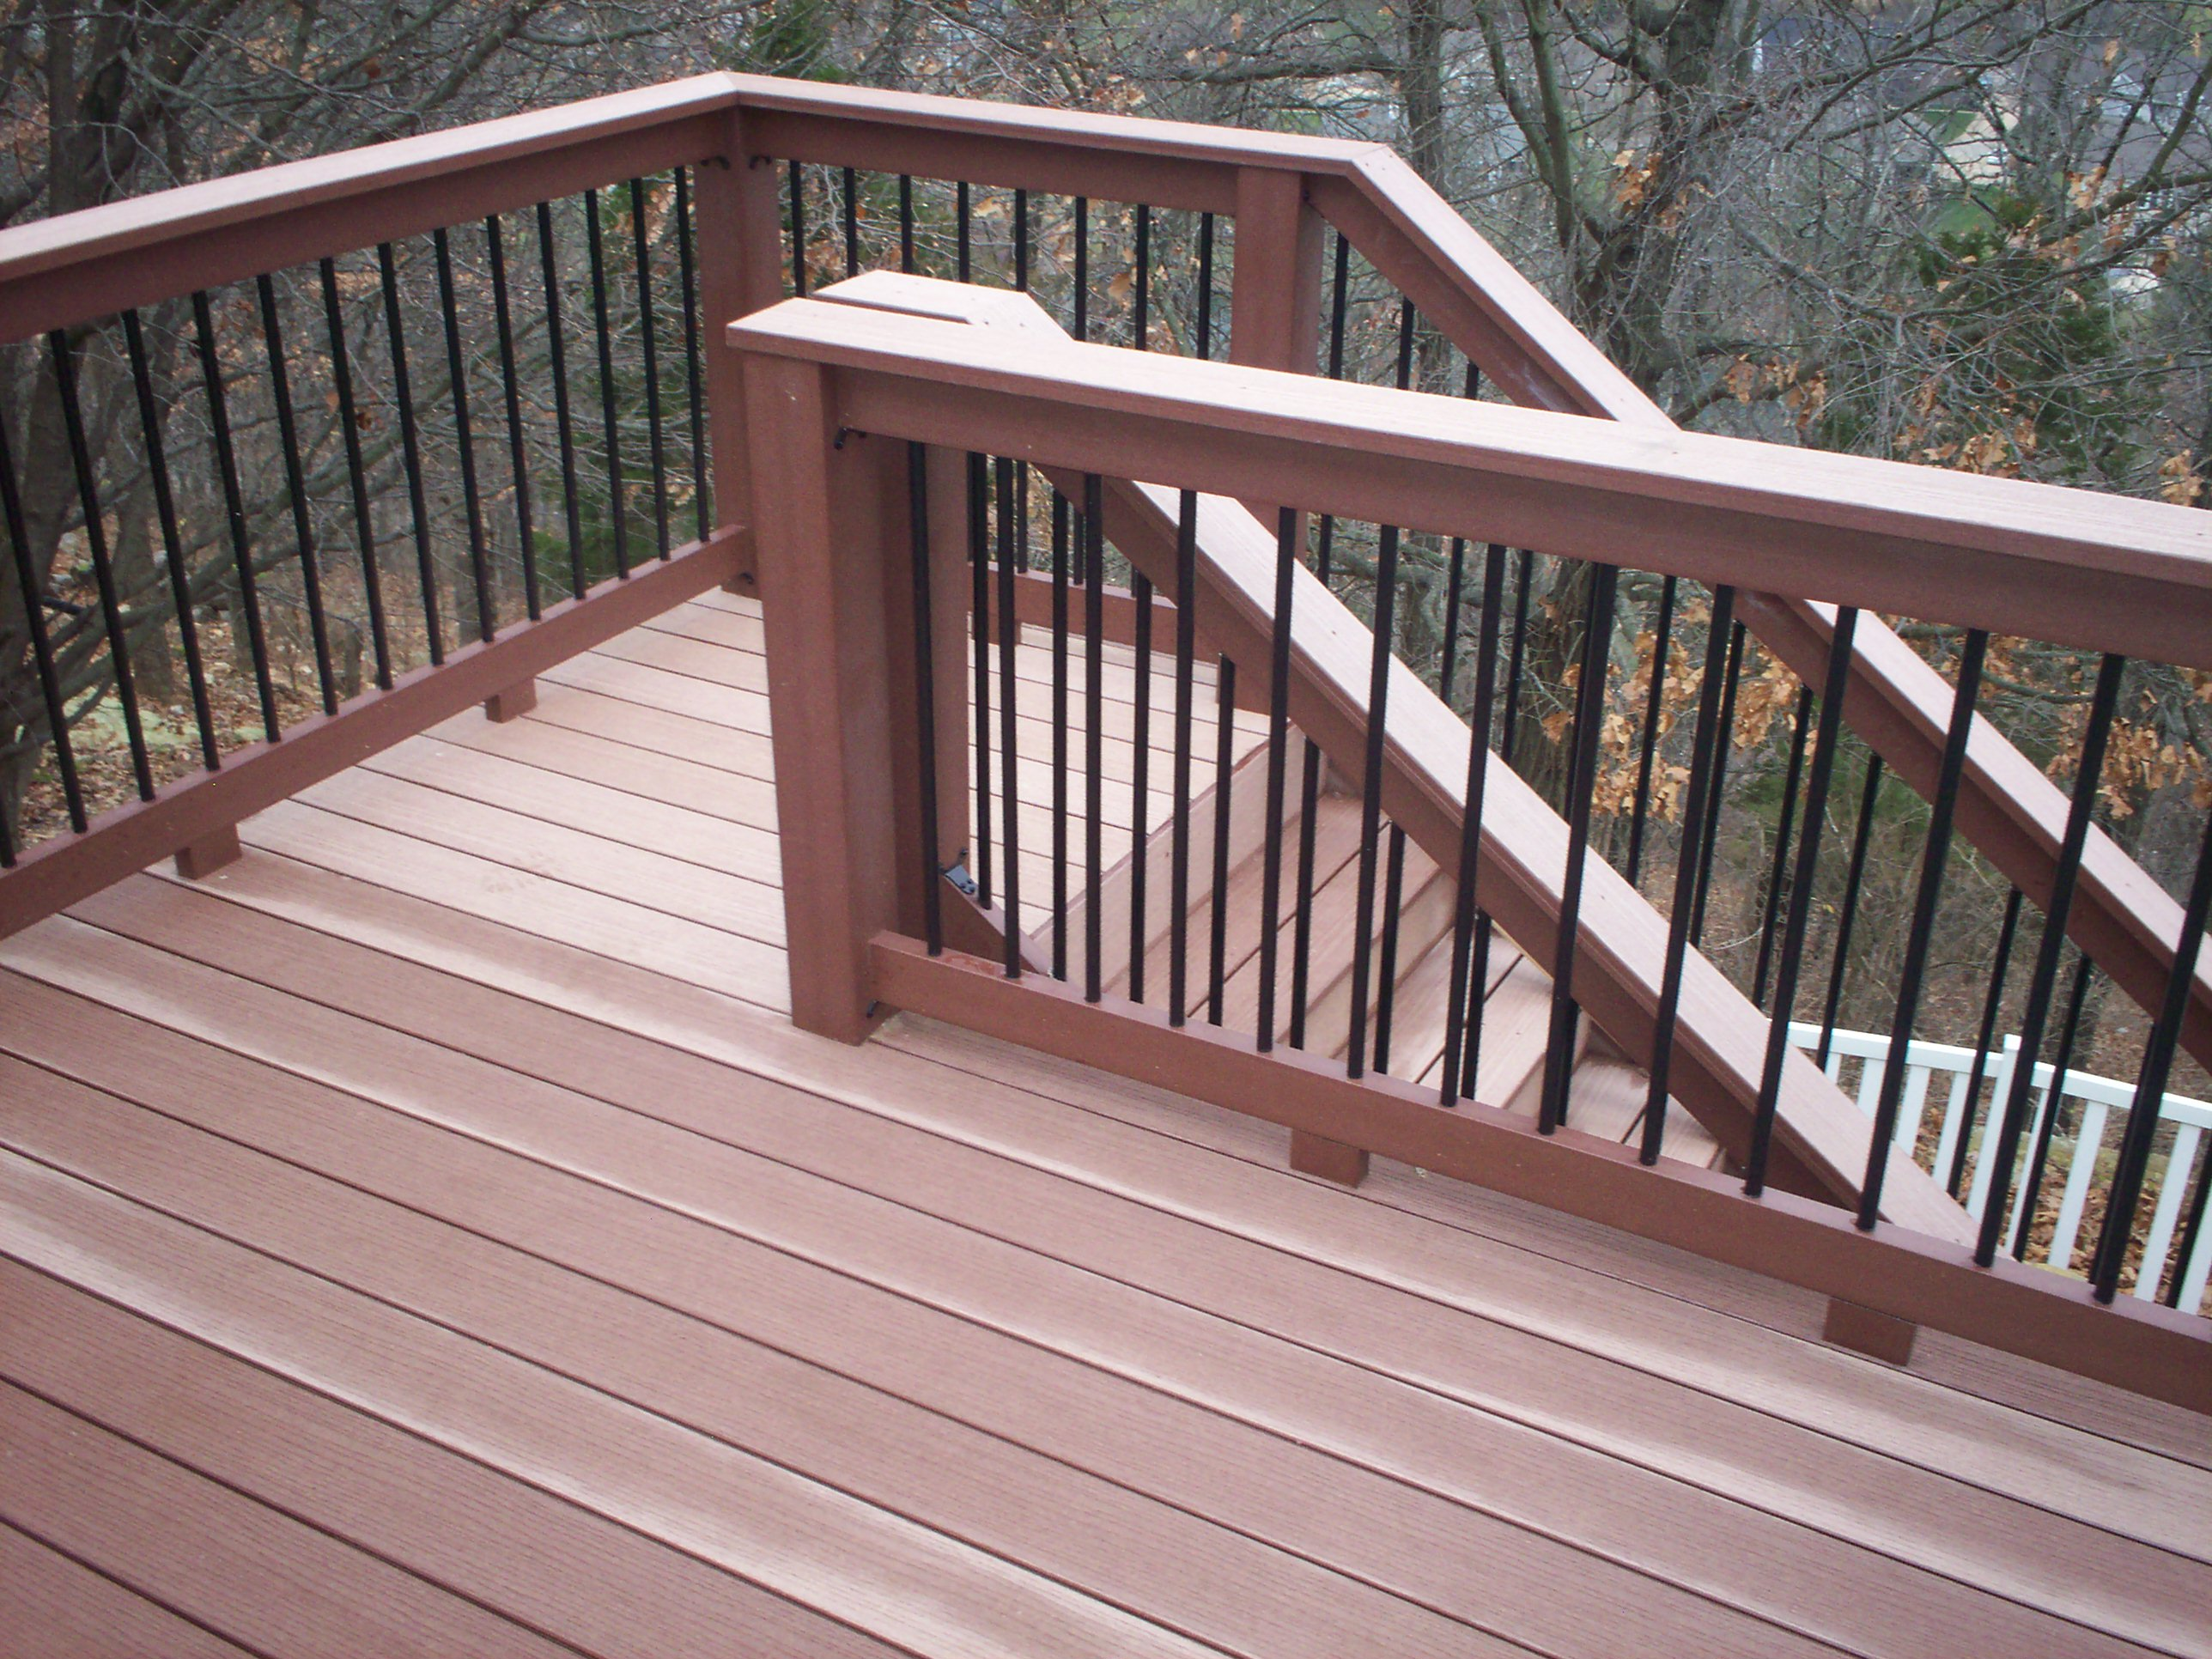 st louis decks elevated deck designs by archadeck outdoor stair railing ideas - Deck Stairs Design Ideas